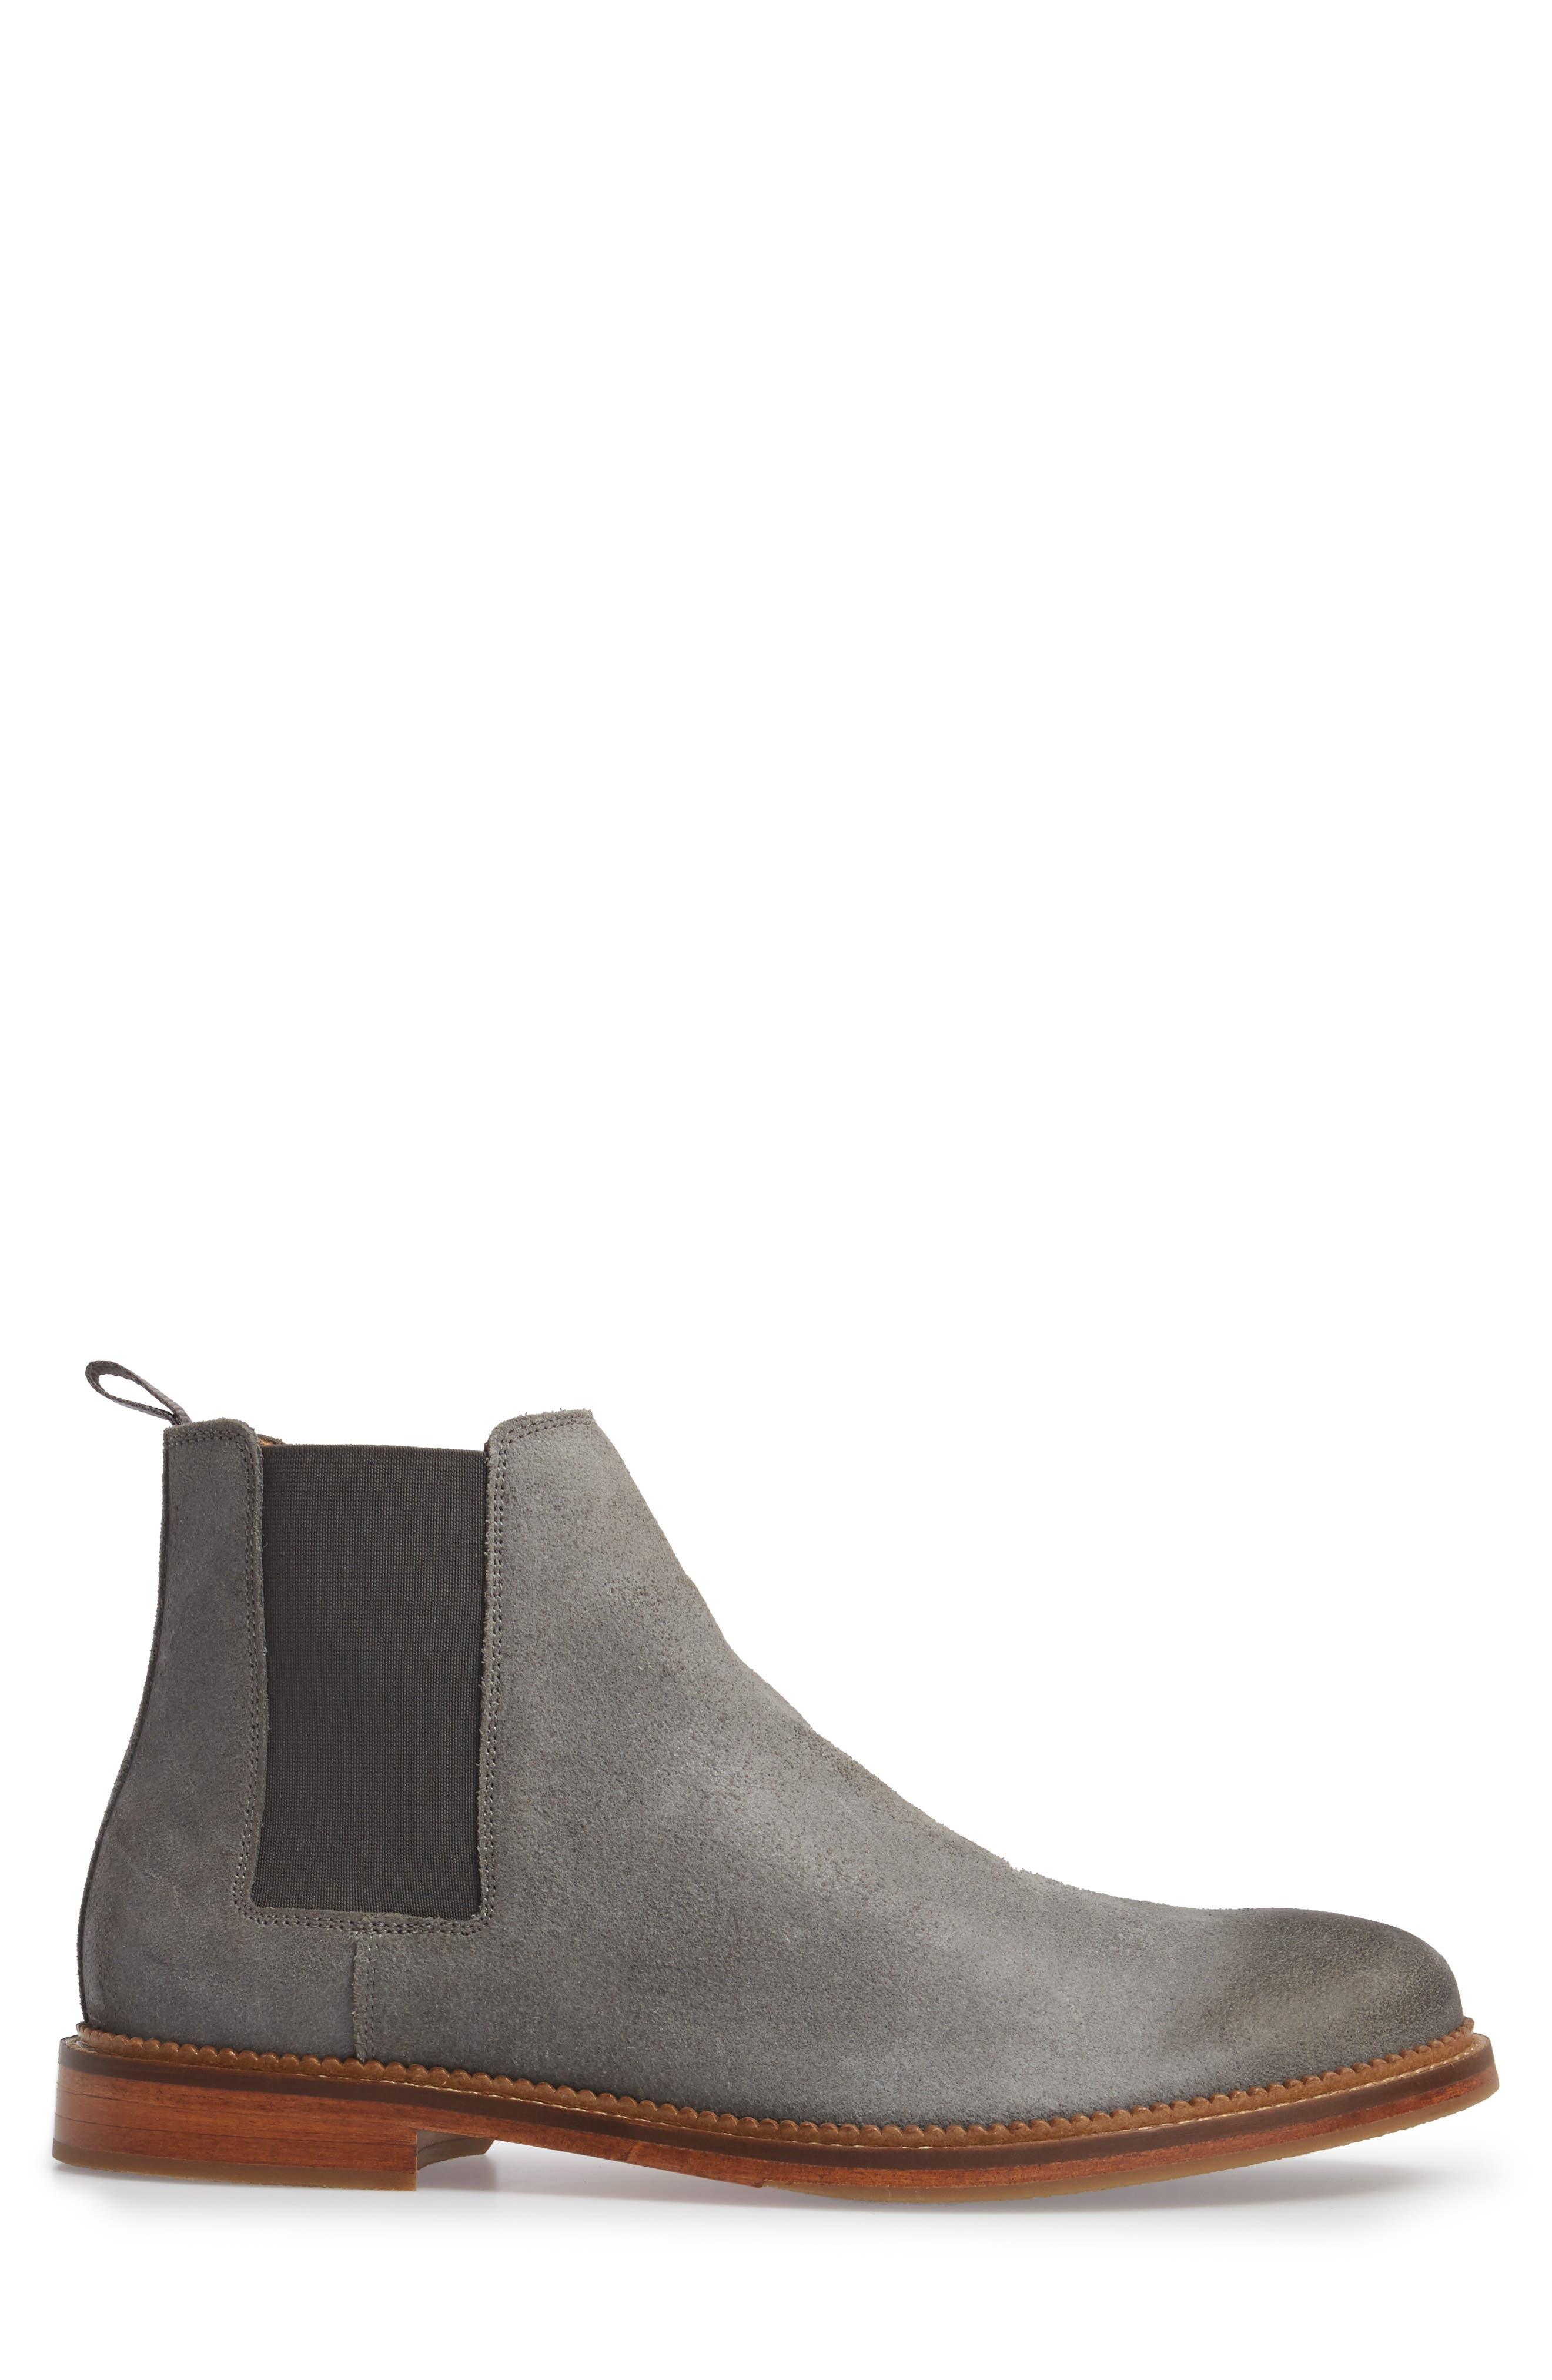 Jamie Chelsea Boot,                             Alternate thumbnail 3, color,                             Magnet Suede